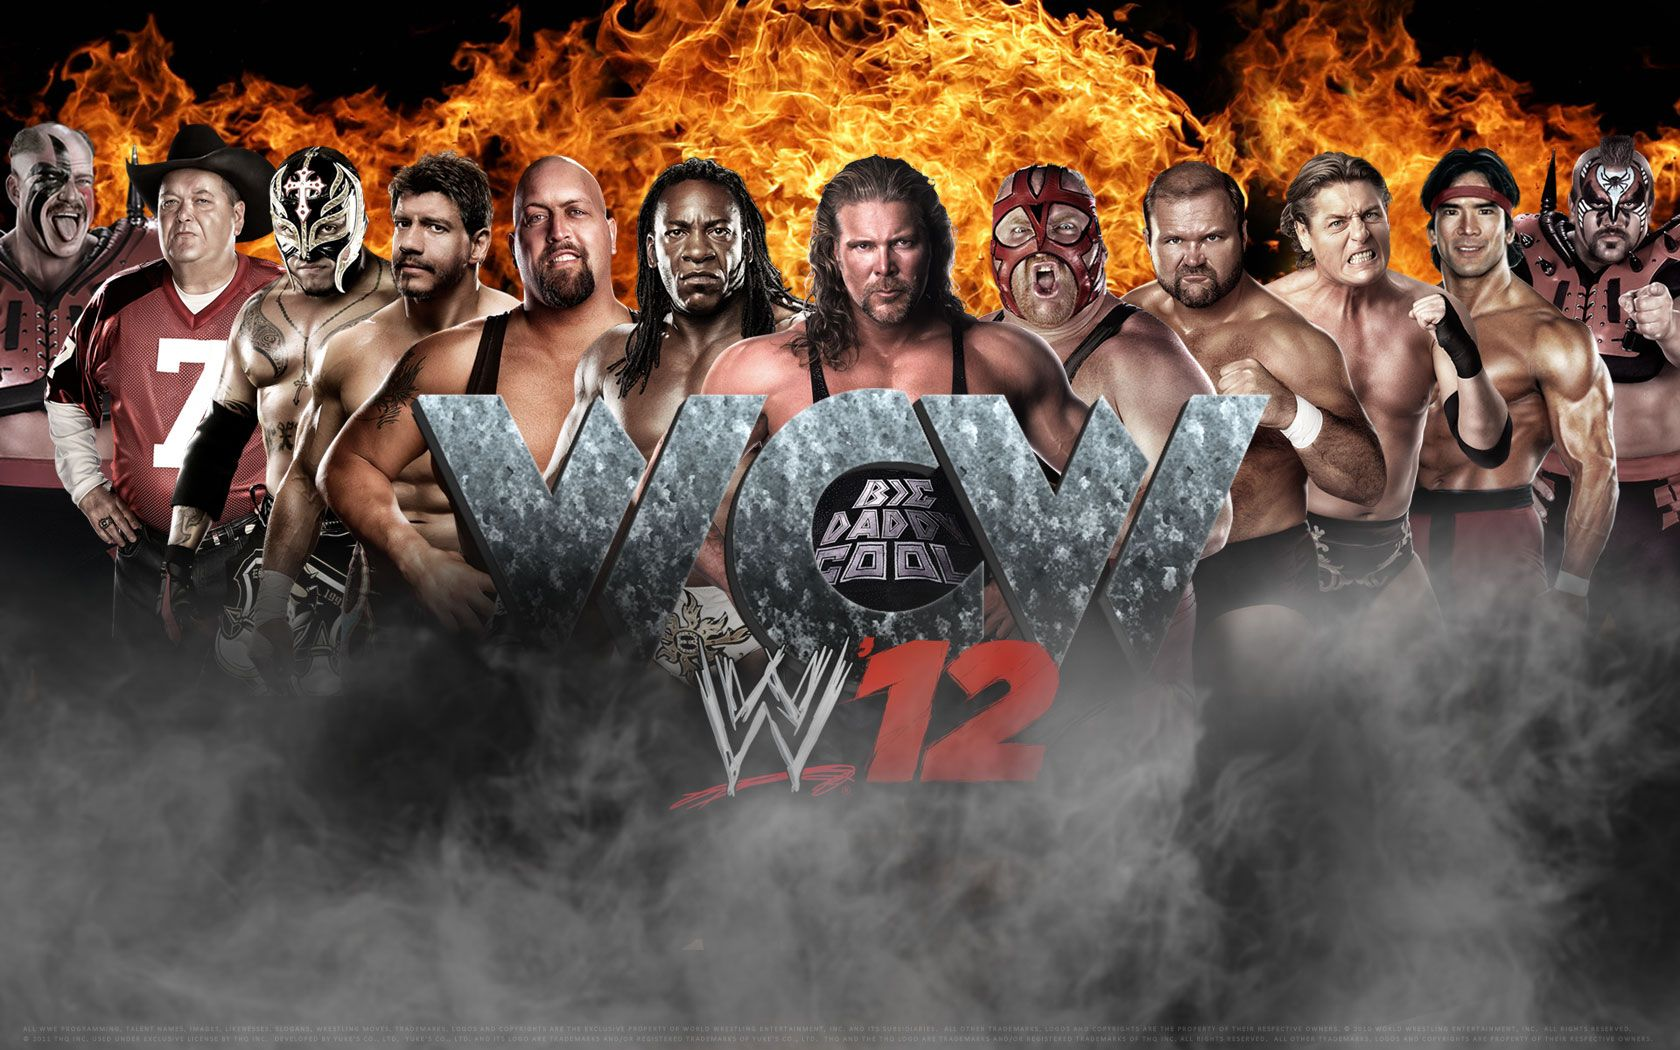 WWE12 Wallpaper WCW Wwe s, Wcw wrestlers, Professional